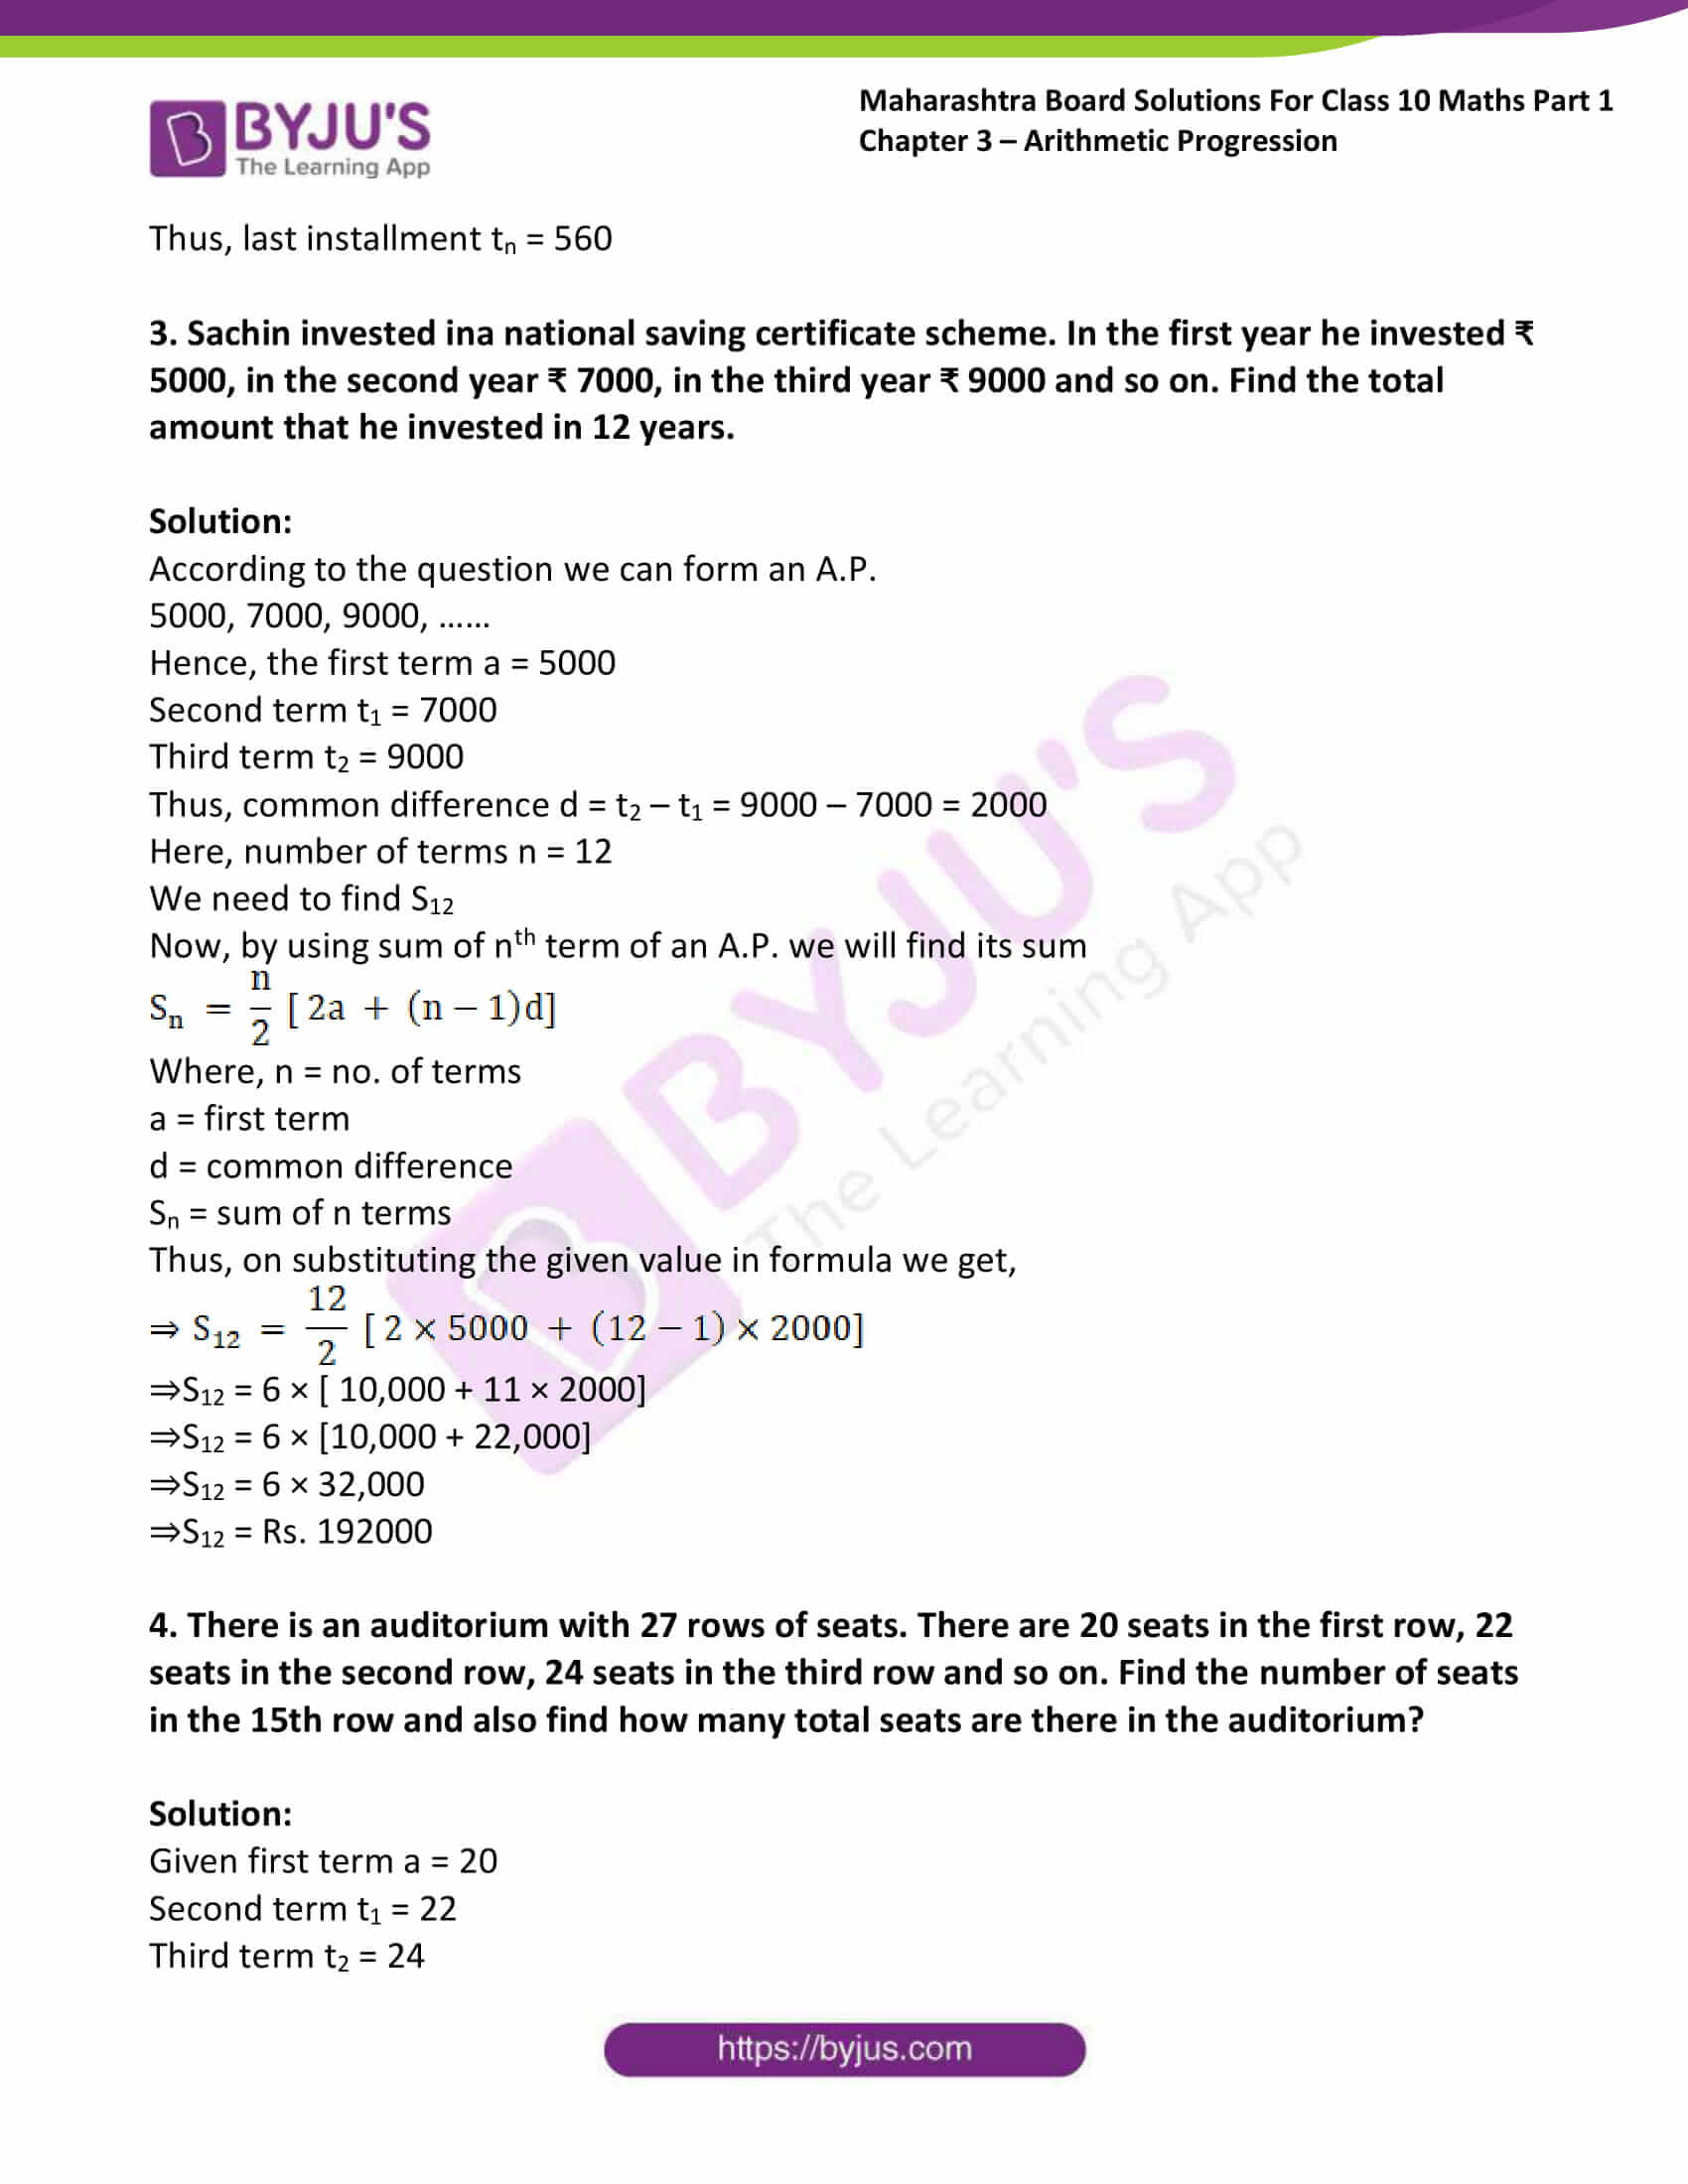 msbshse solutions class 10 maths part 1 chapter 3 27